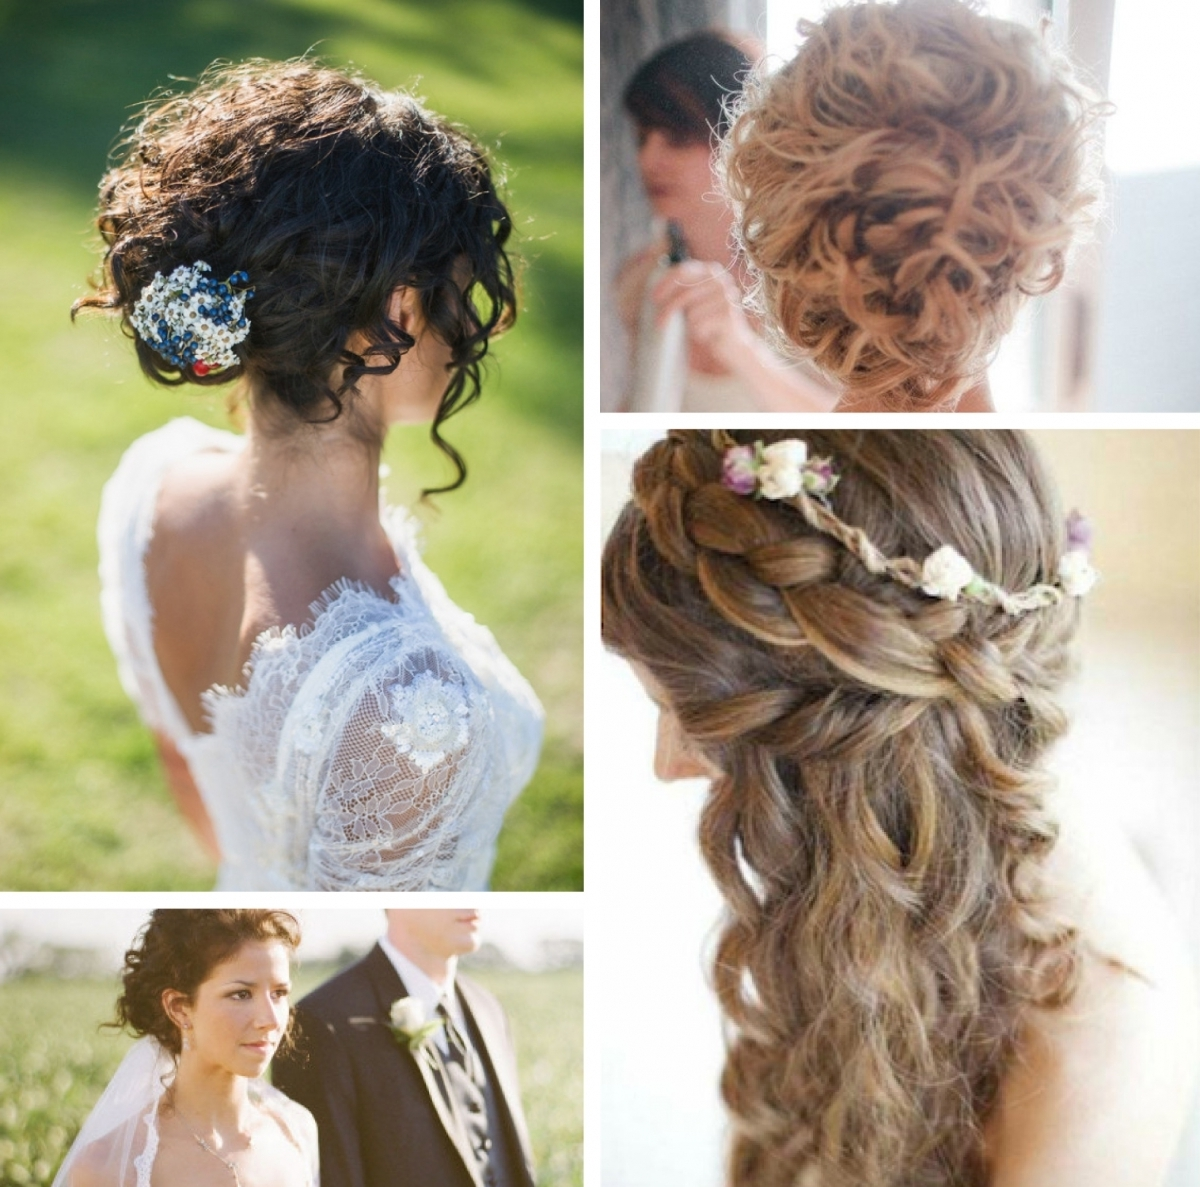 Best Wedding Hairstyles With Braids And Curls Images – Styles Regarding Newest Wedding Hairstyles With Curls (View 2 of 15)